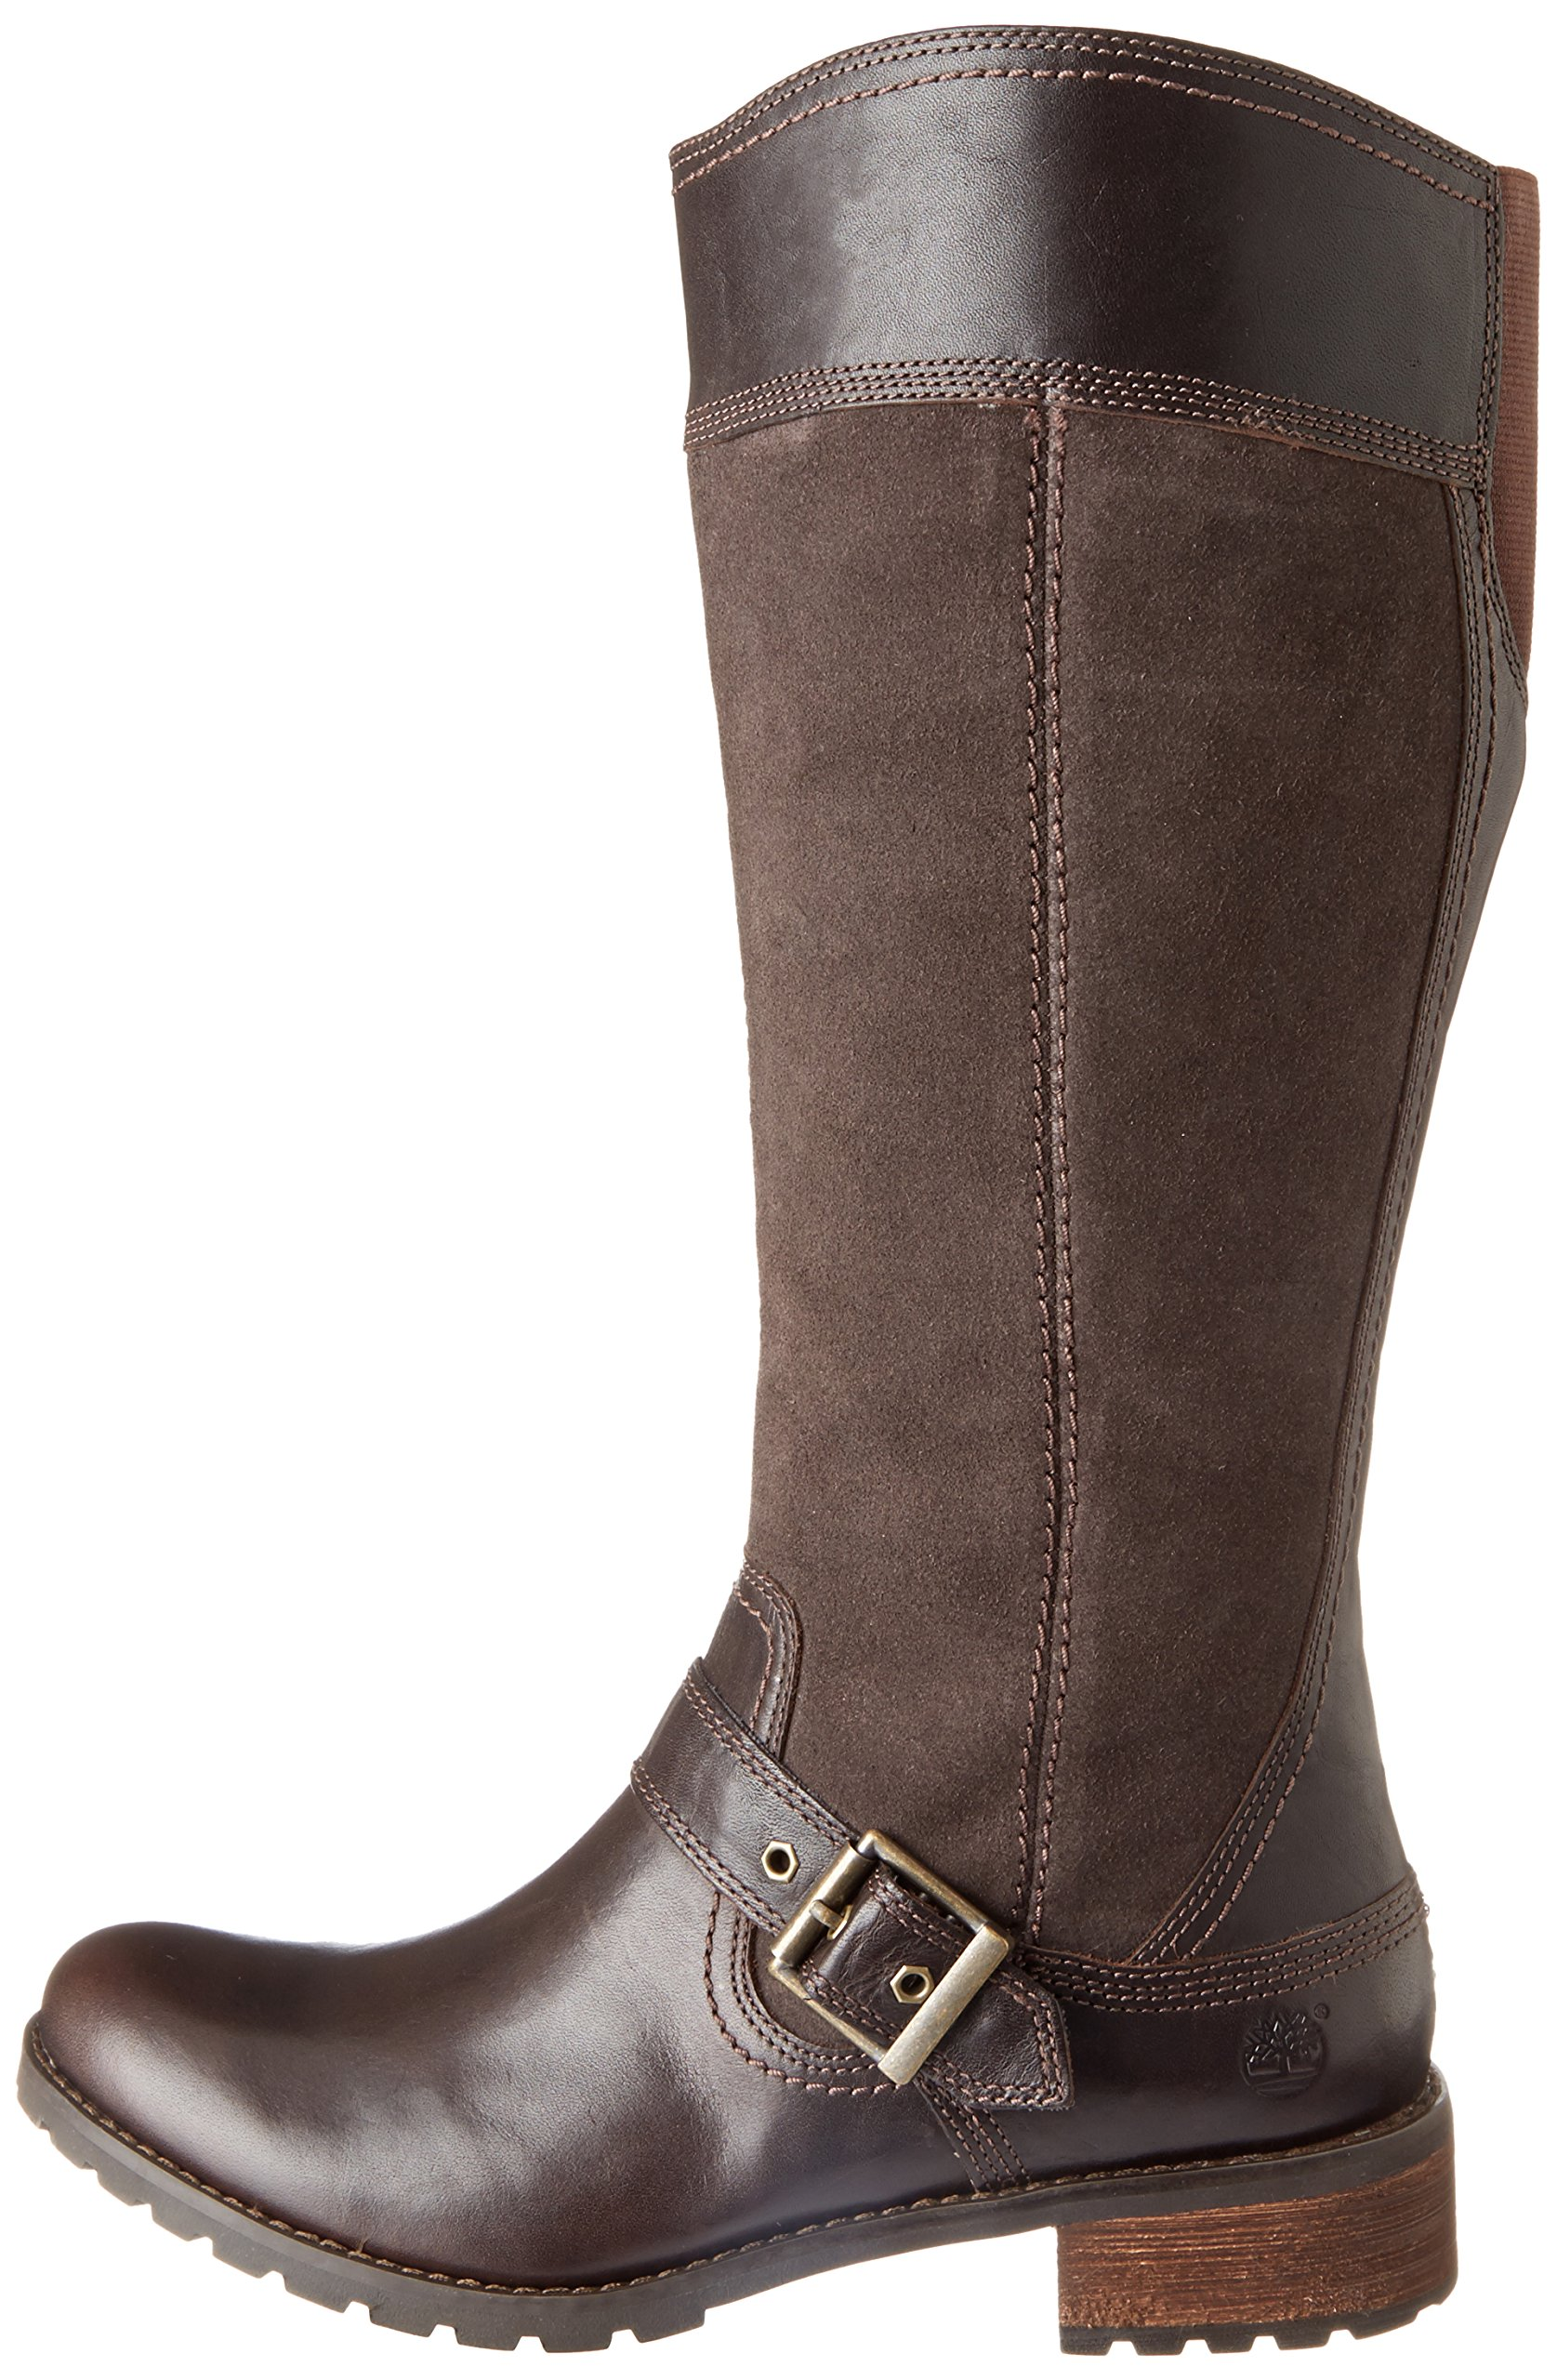 Timberland Women's EK Bethel Tall Harness Boot,Brown,6 W US by Timberland (Image #5)